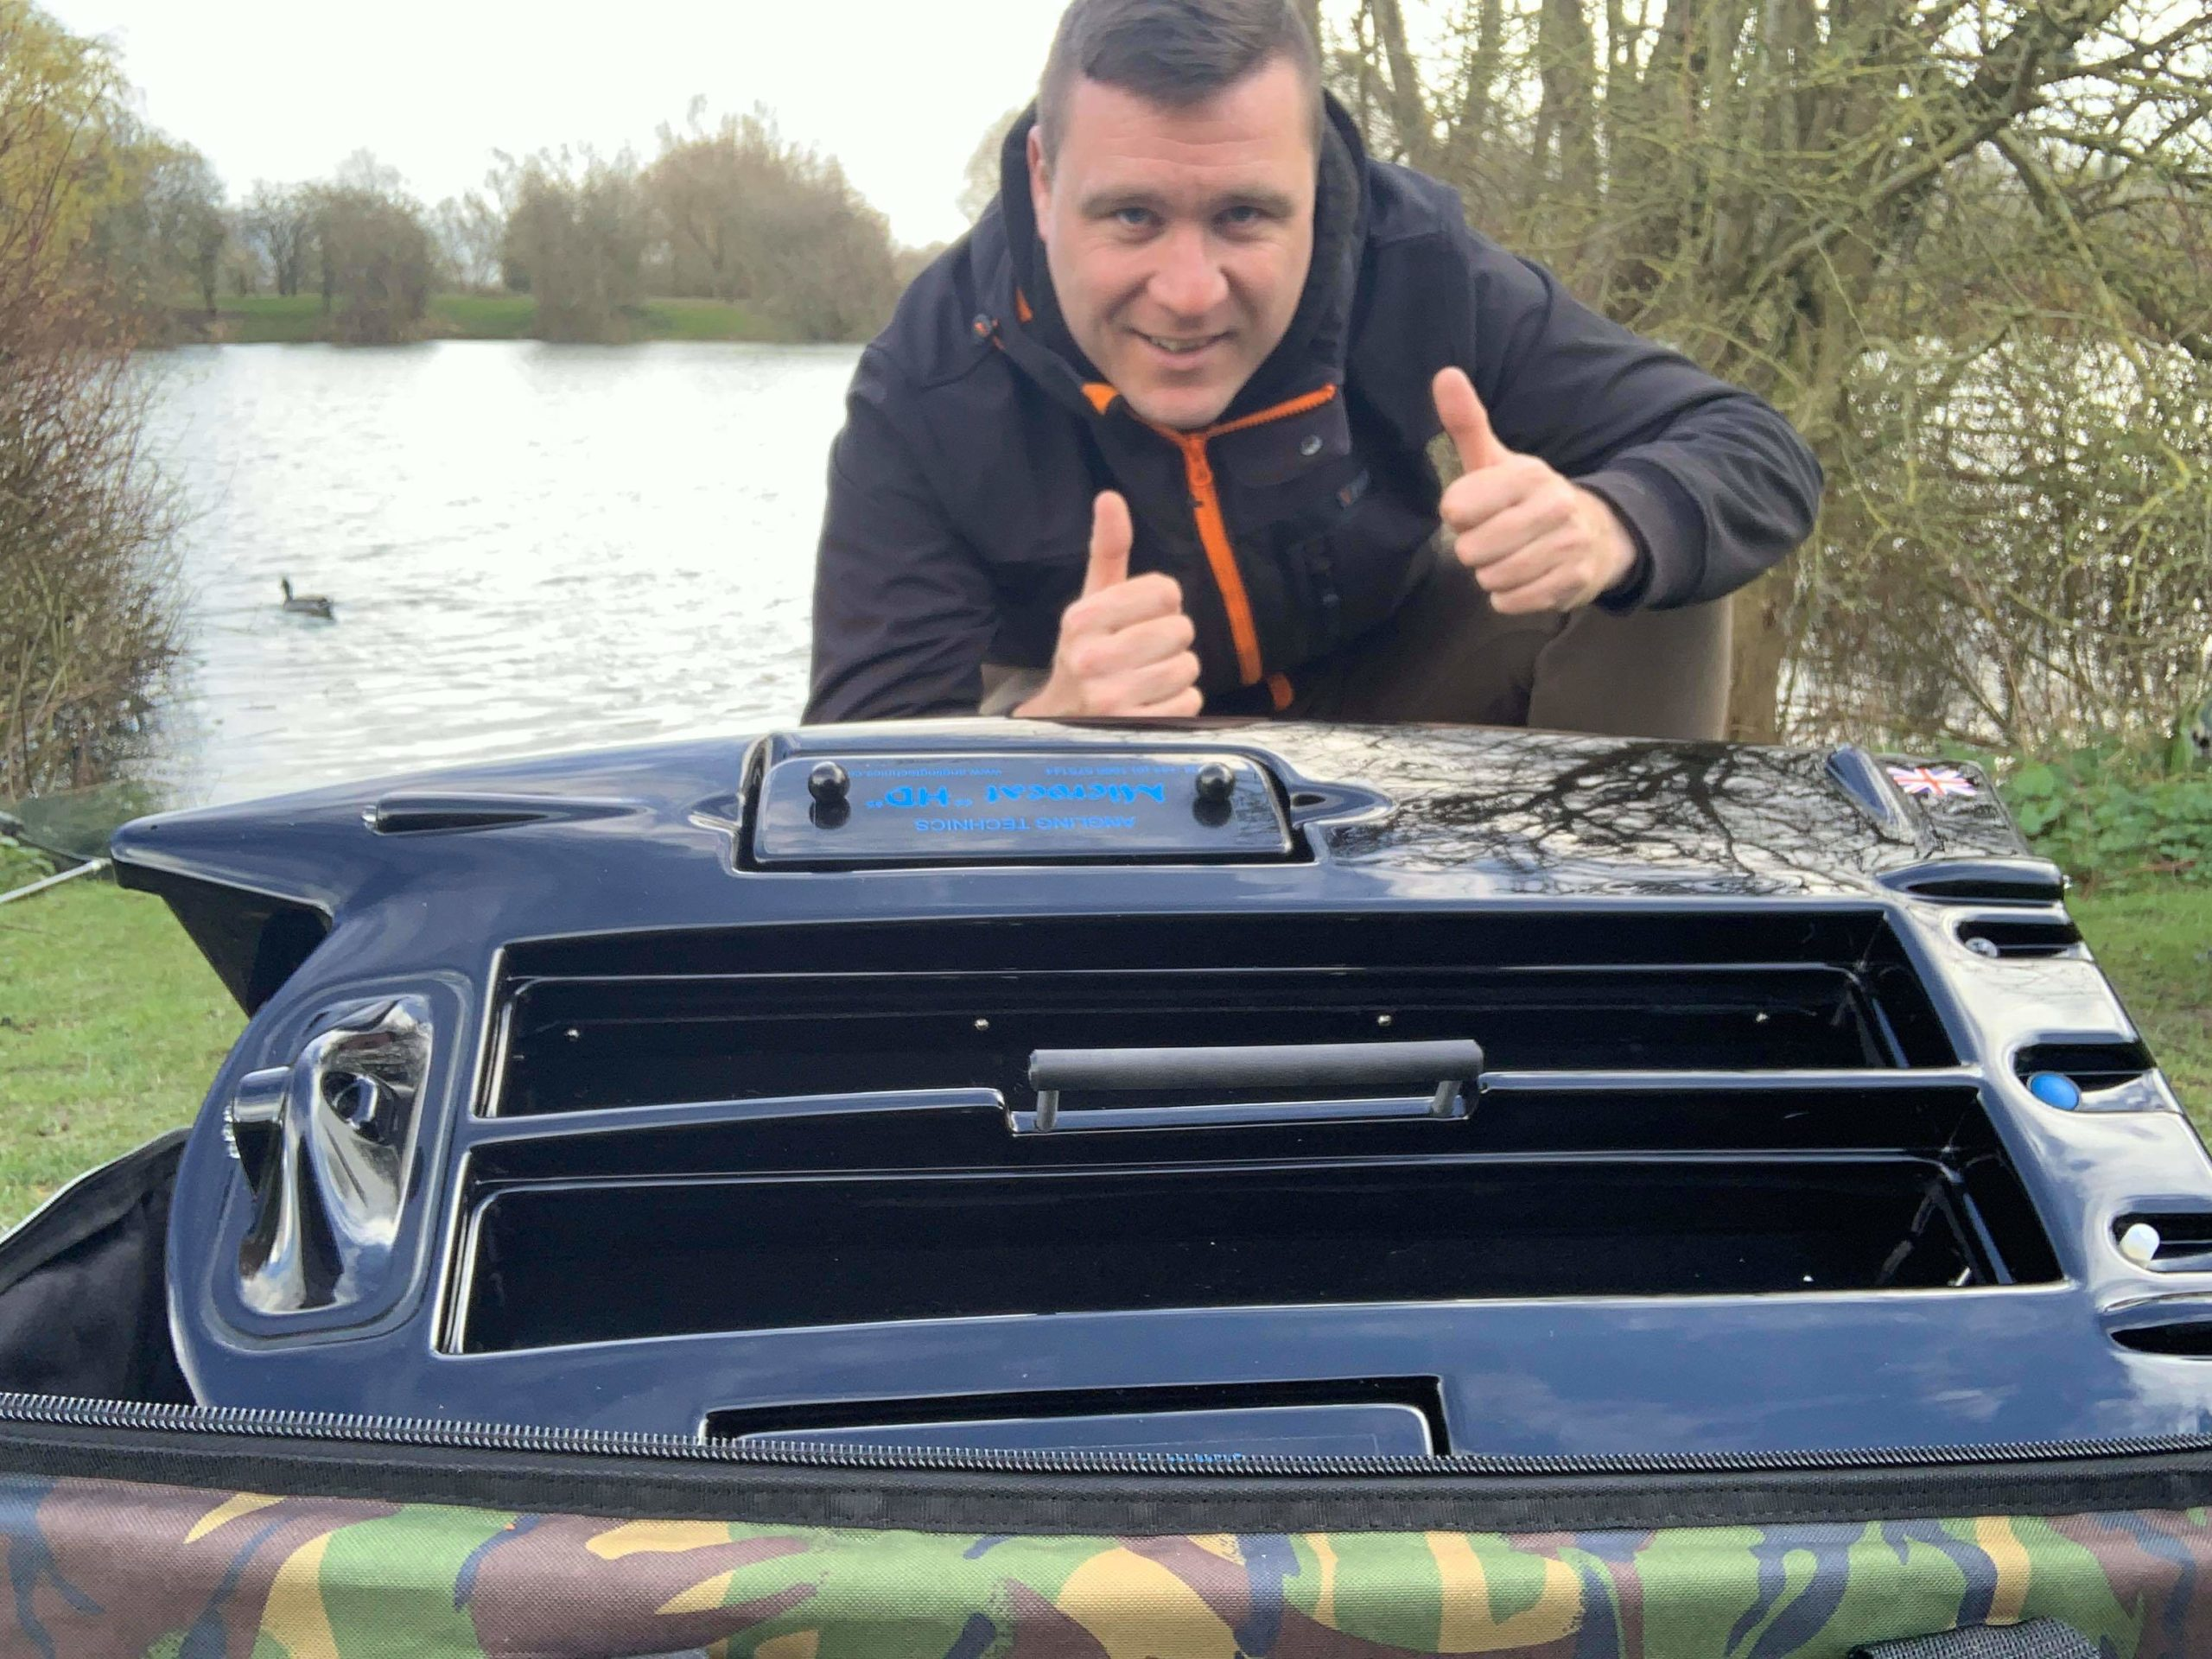 Adam Pidgeon wins a Microcat HD Bait Boat!